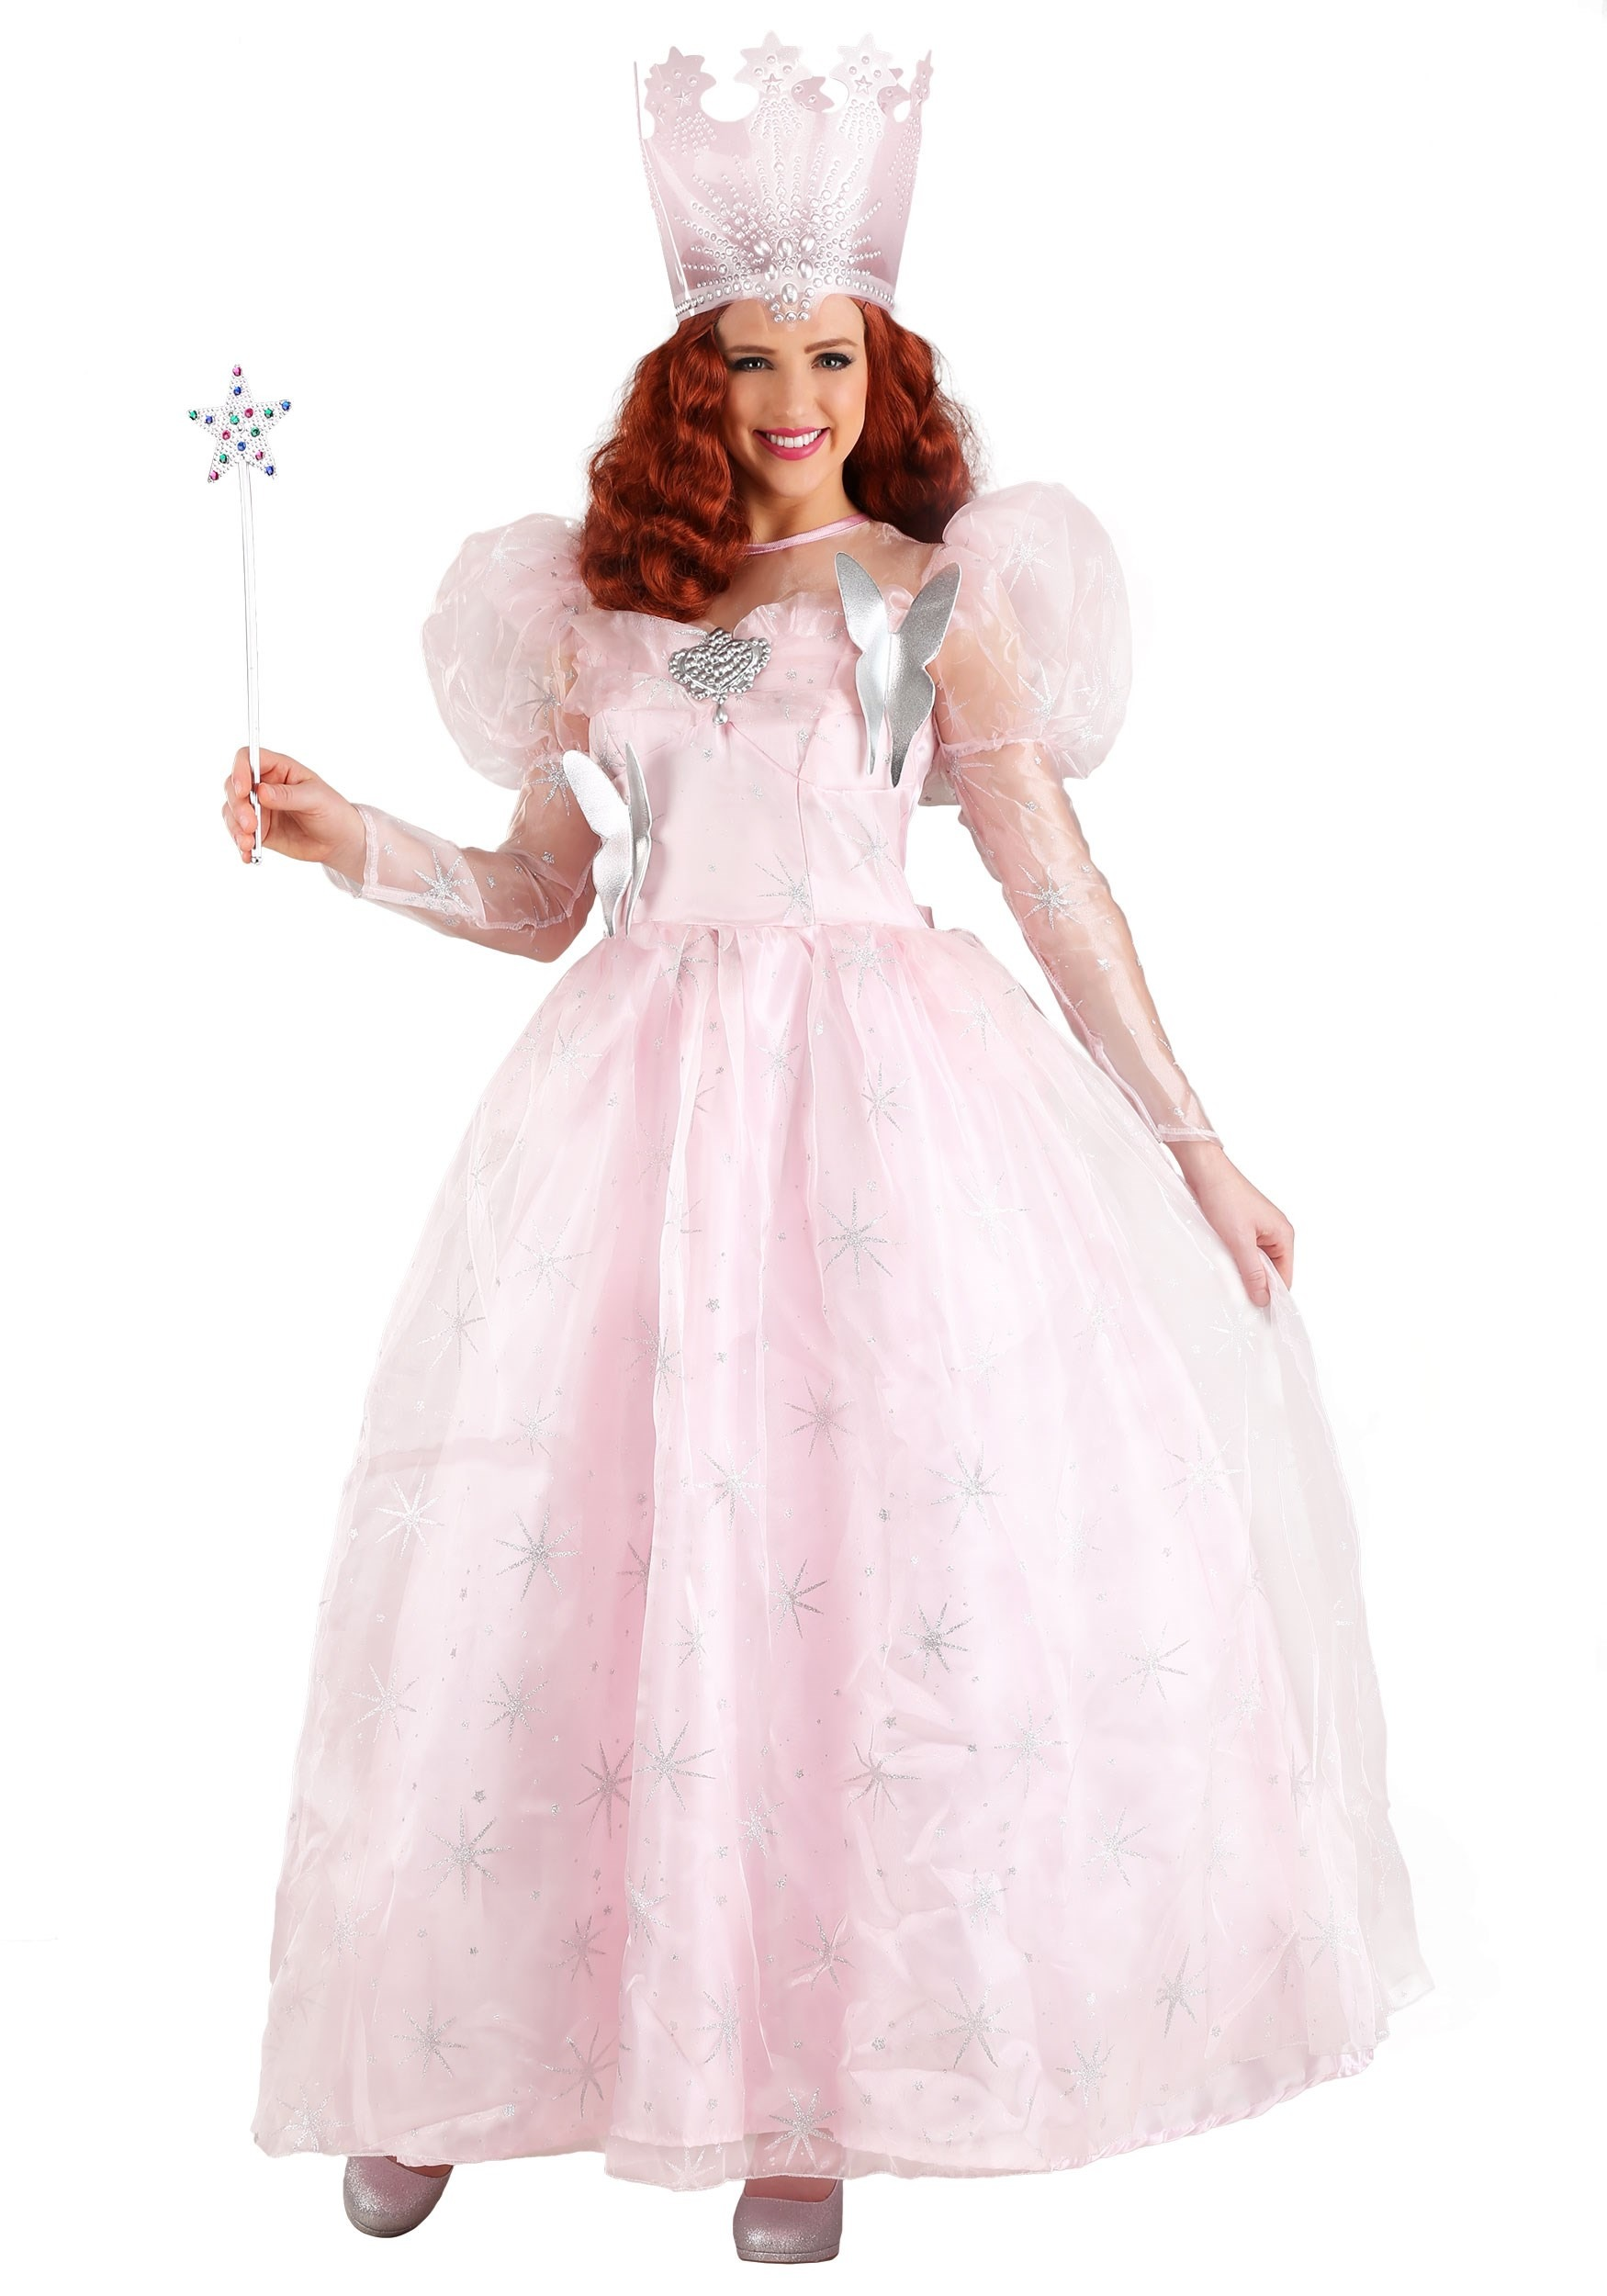 plus size deluxe gilnda the good witch costume - Cheapest Place To Buy Halloween Costumes